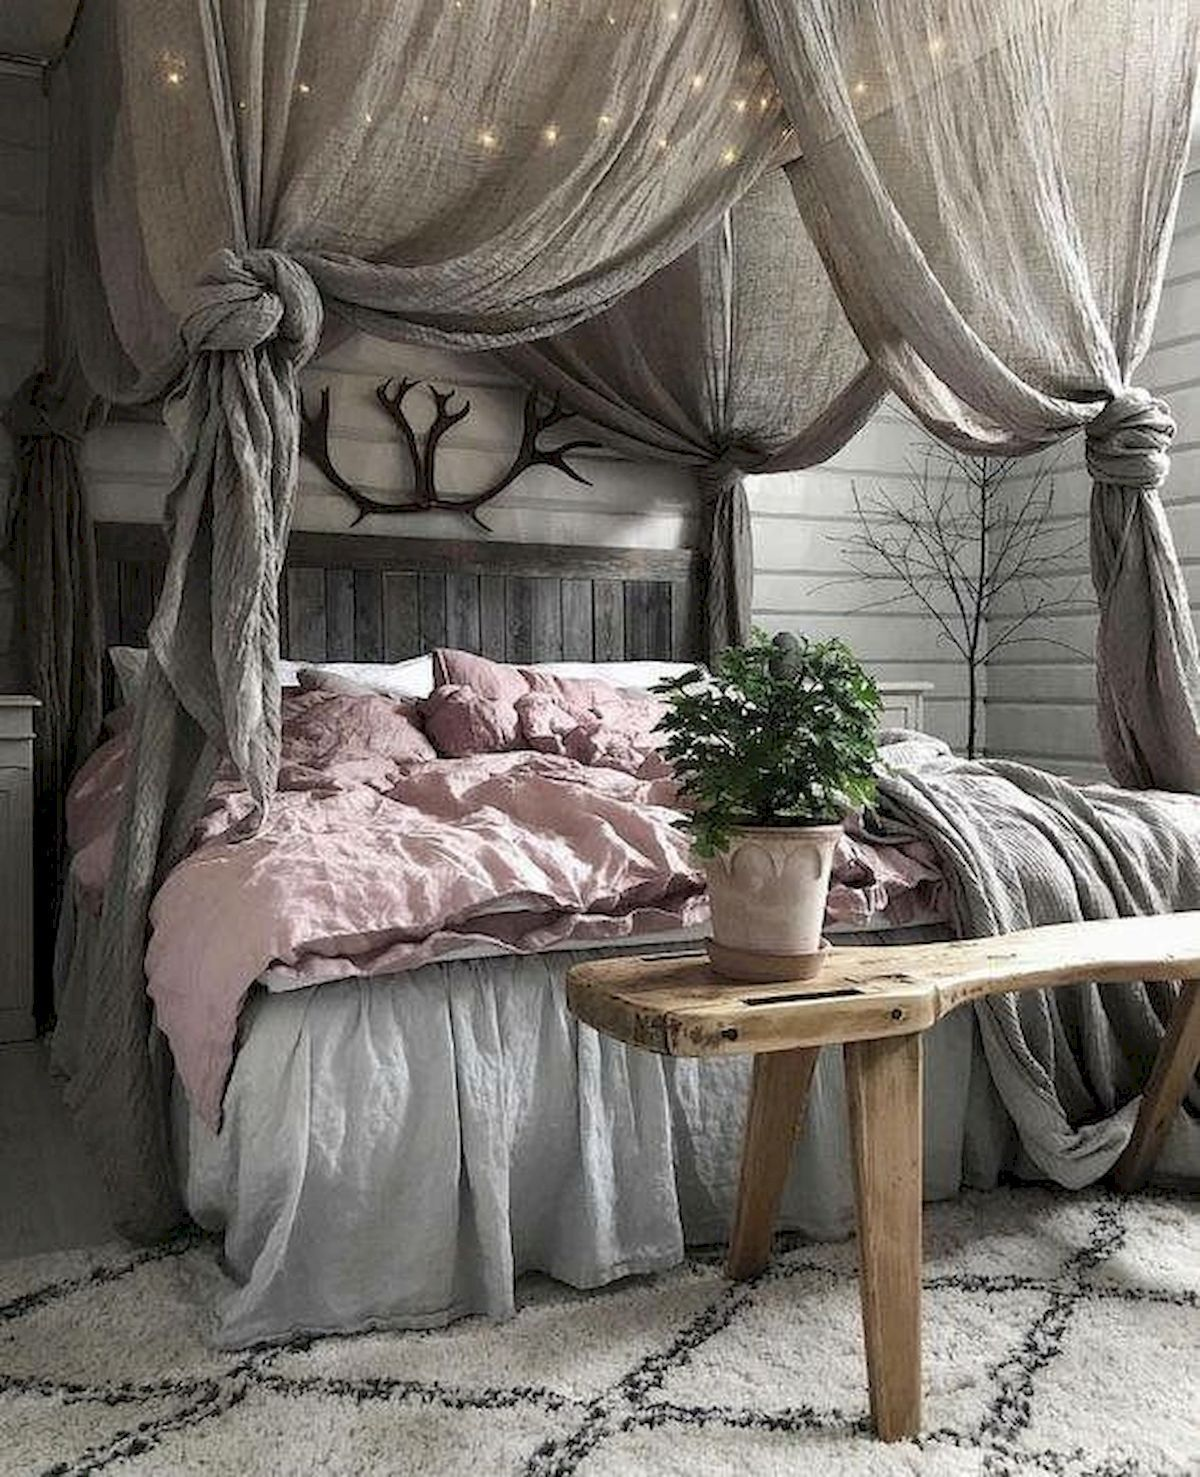 16 Relaxing Bedroom Designs For Your Comfort: 82 Cool Bedroom Ideas For Creative Couples (16